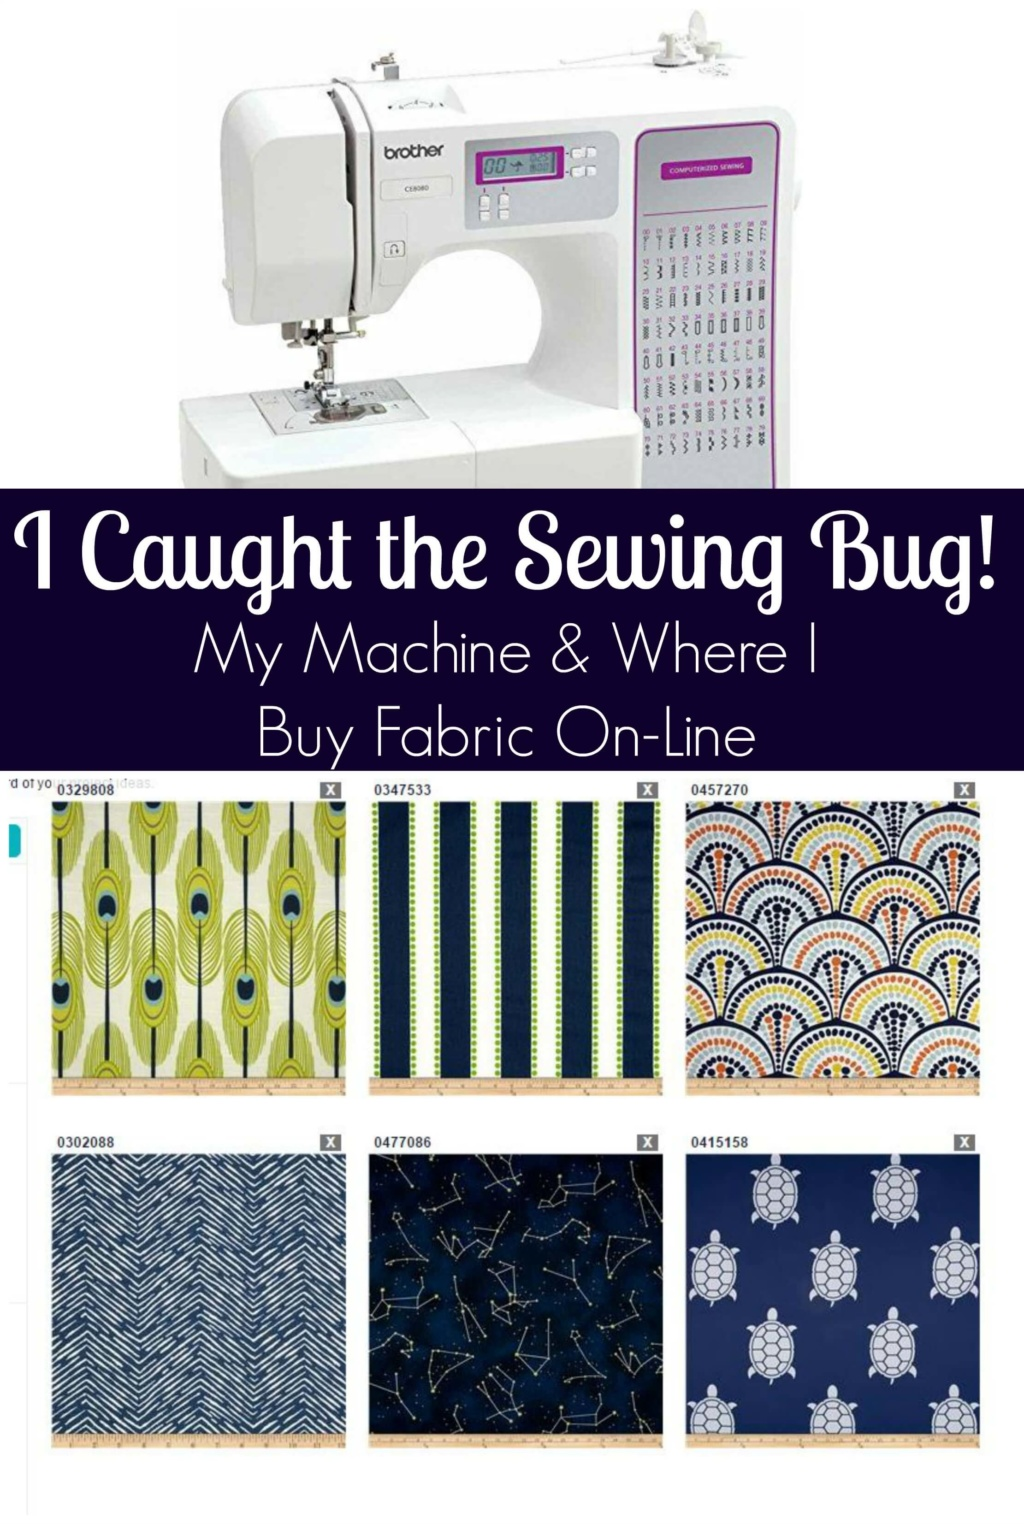 The Sewing Bug - My Machine and Where I Buy Fabric On-Line